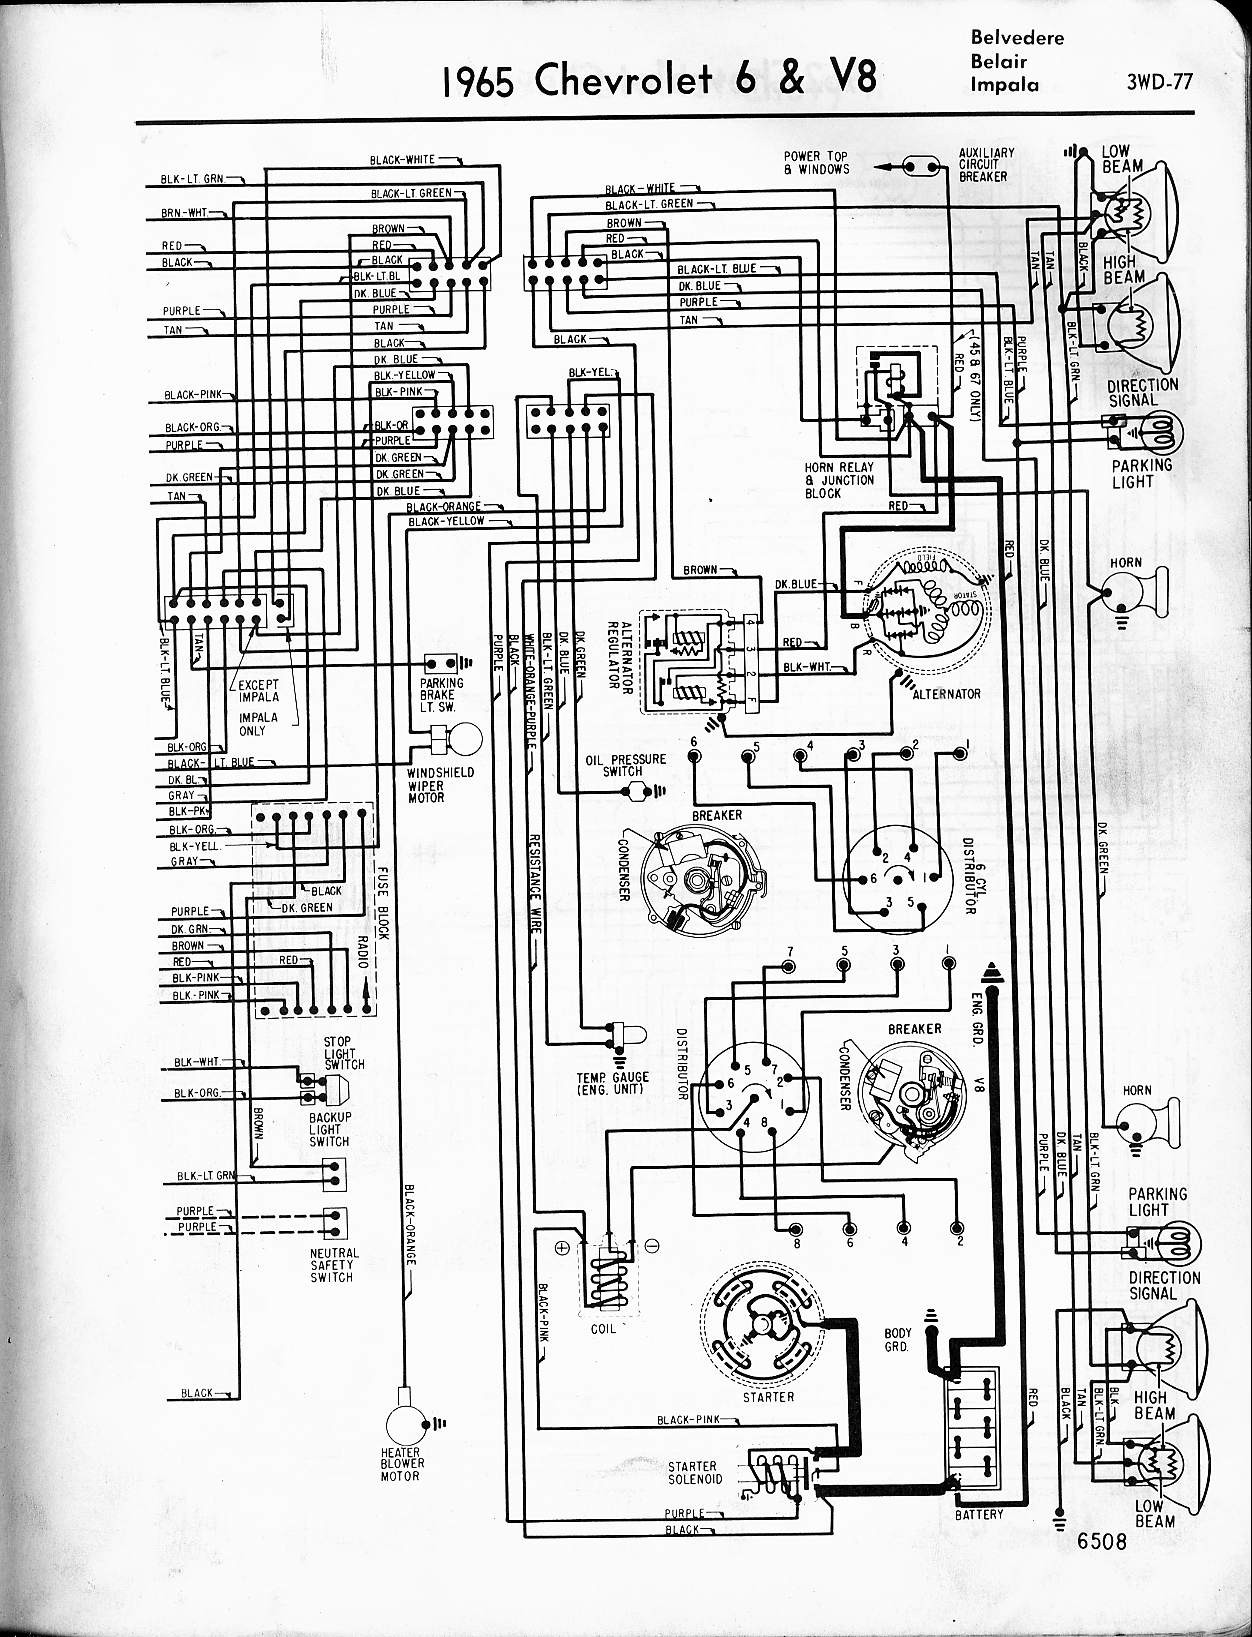 hight resolution of 1968 chevy impala wiring diagram schematic example electrical 2007 chevy 4x4 wiring diagram 1963 chevy impala